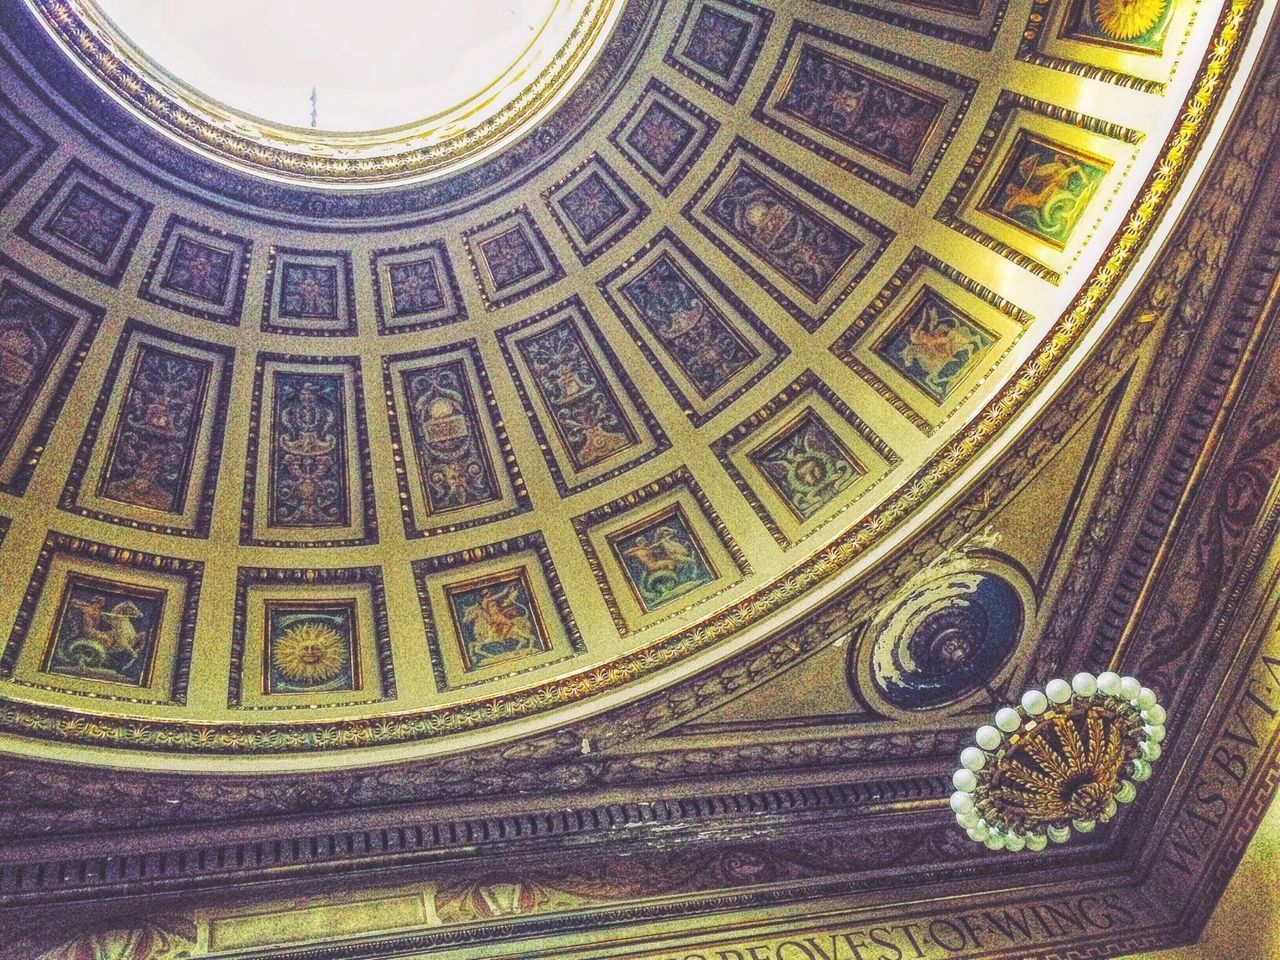 design, pattern, art and craft, indoors, history, ceiling, place of worship, religion, architecture, travel destinations, low angle view, backgrounds, no people, full frame, cupola, day